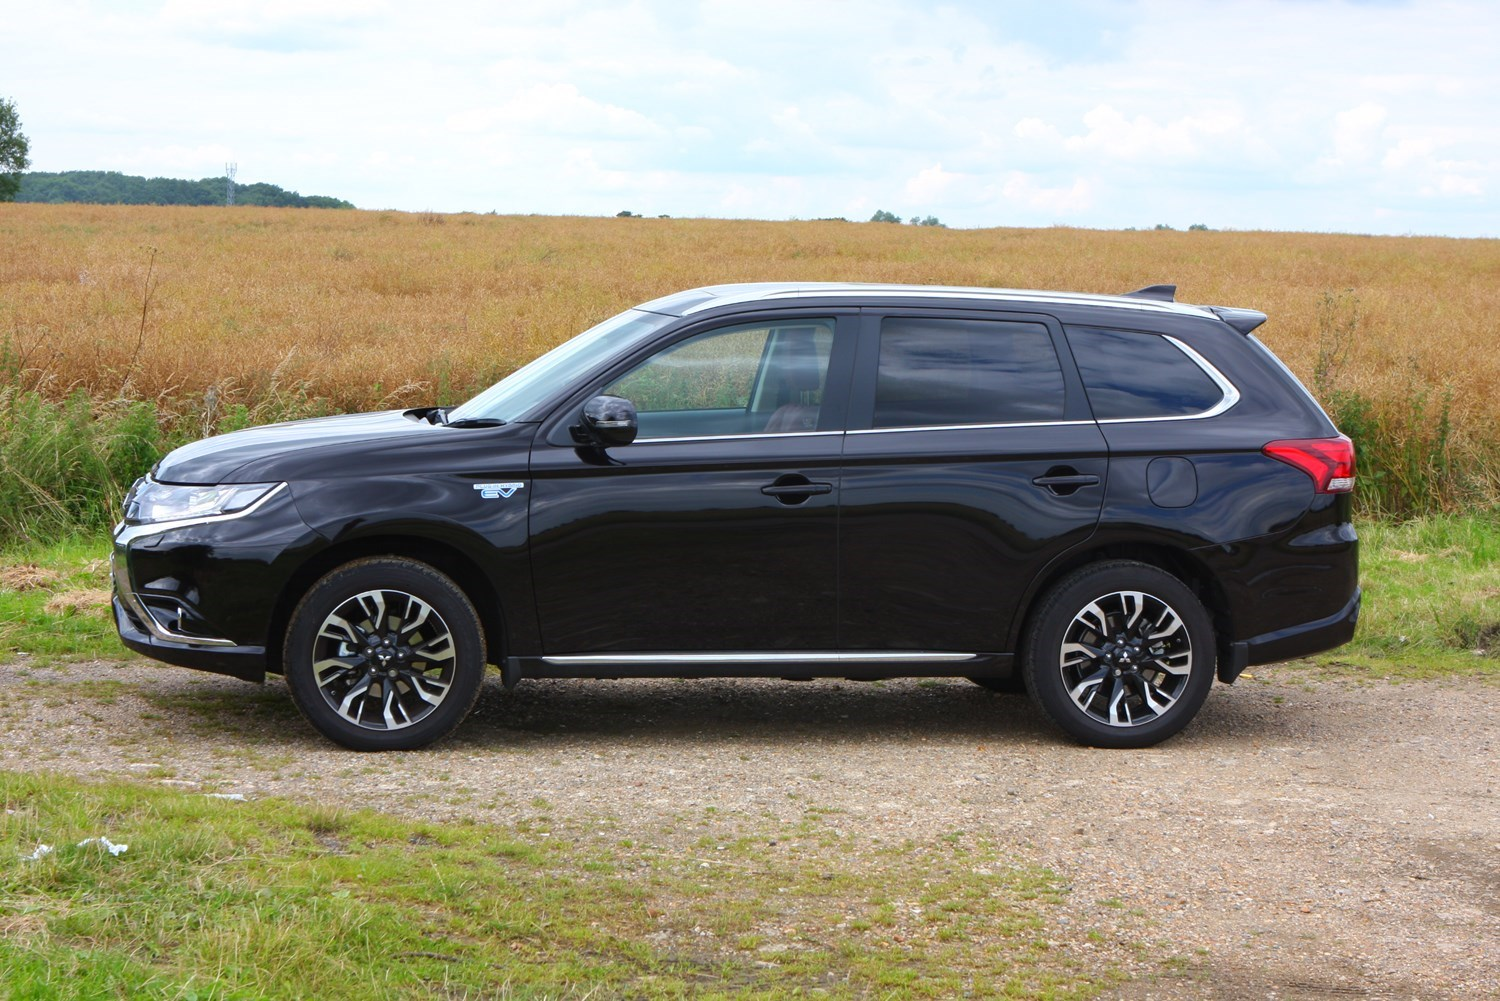 Cars for twins and a toddler - Mitsubishi Outlander